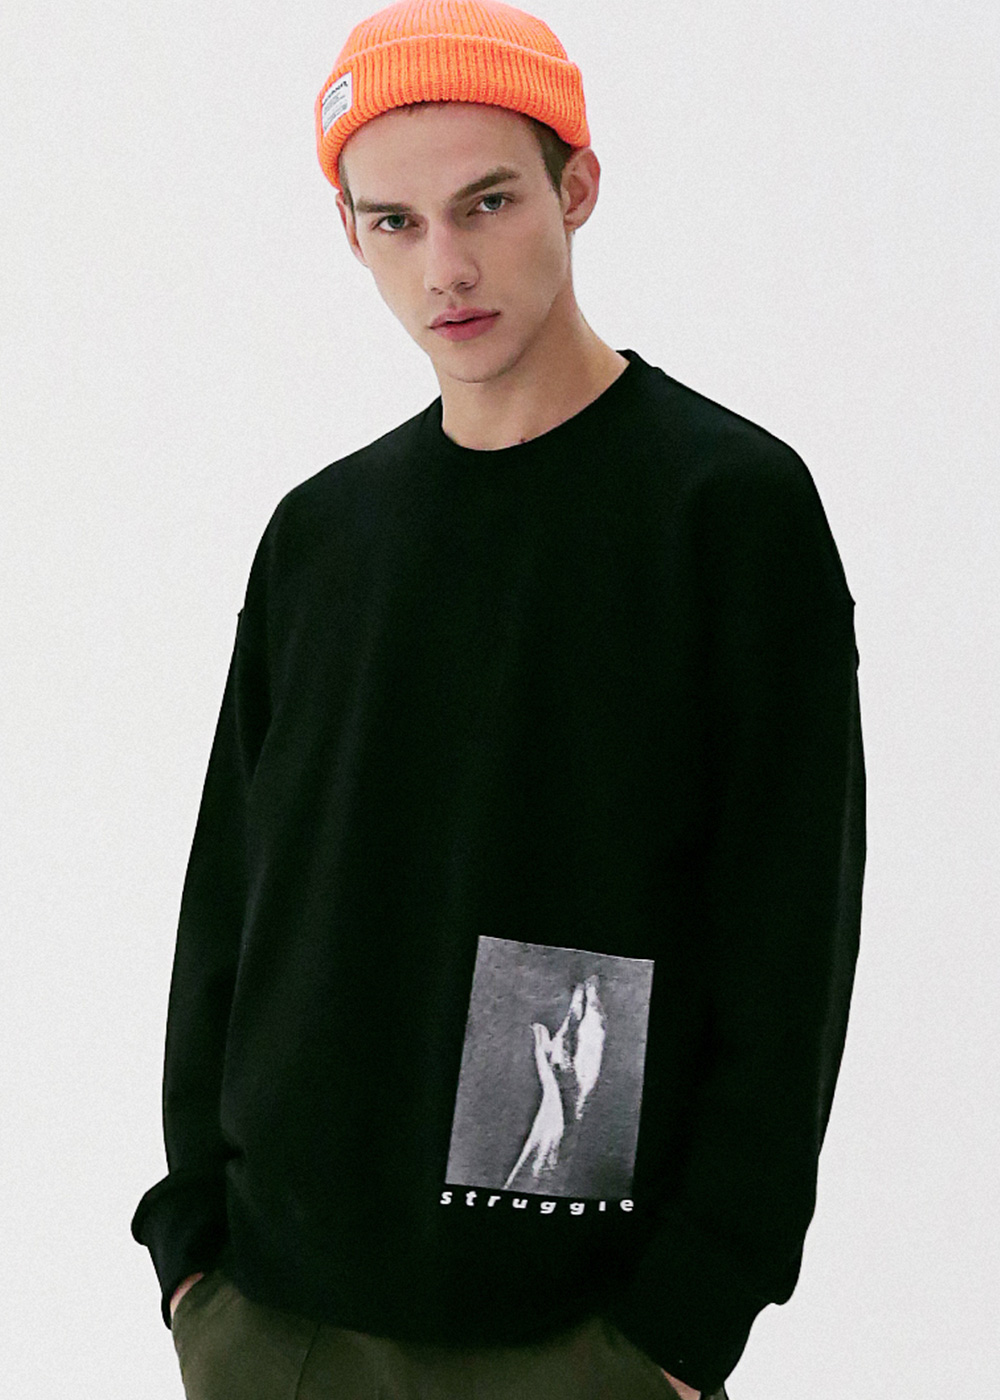 HAND IN SAND CREWNECK MFVCR003-BK